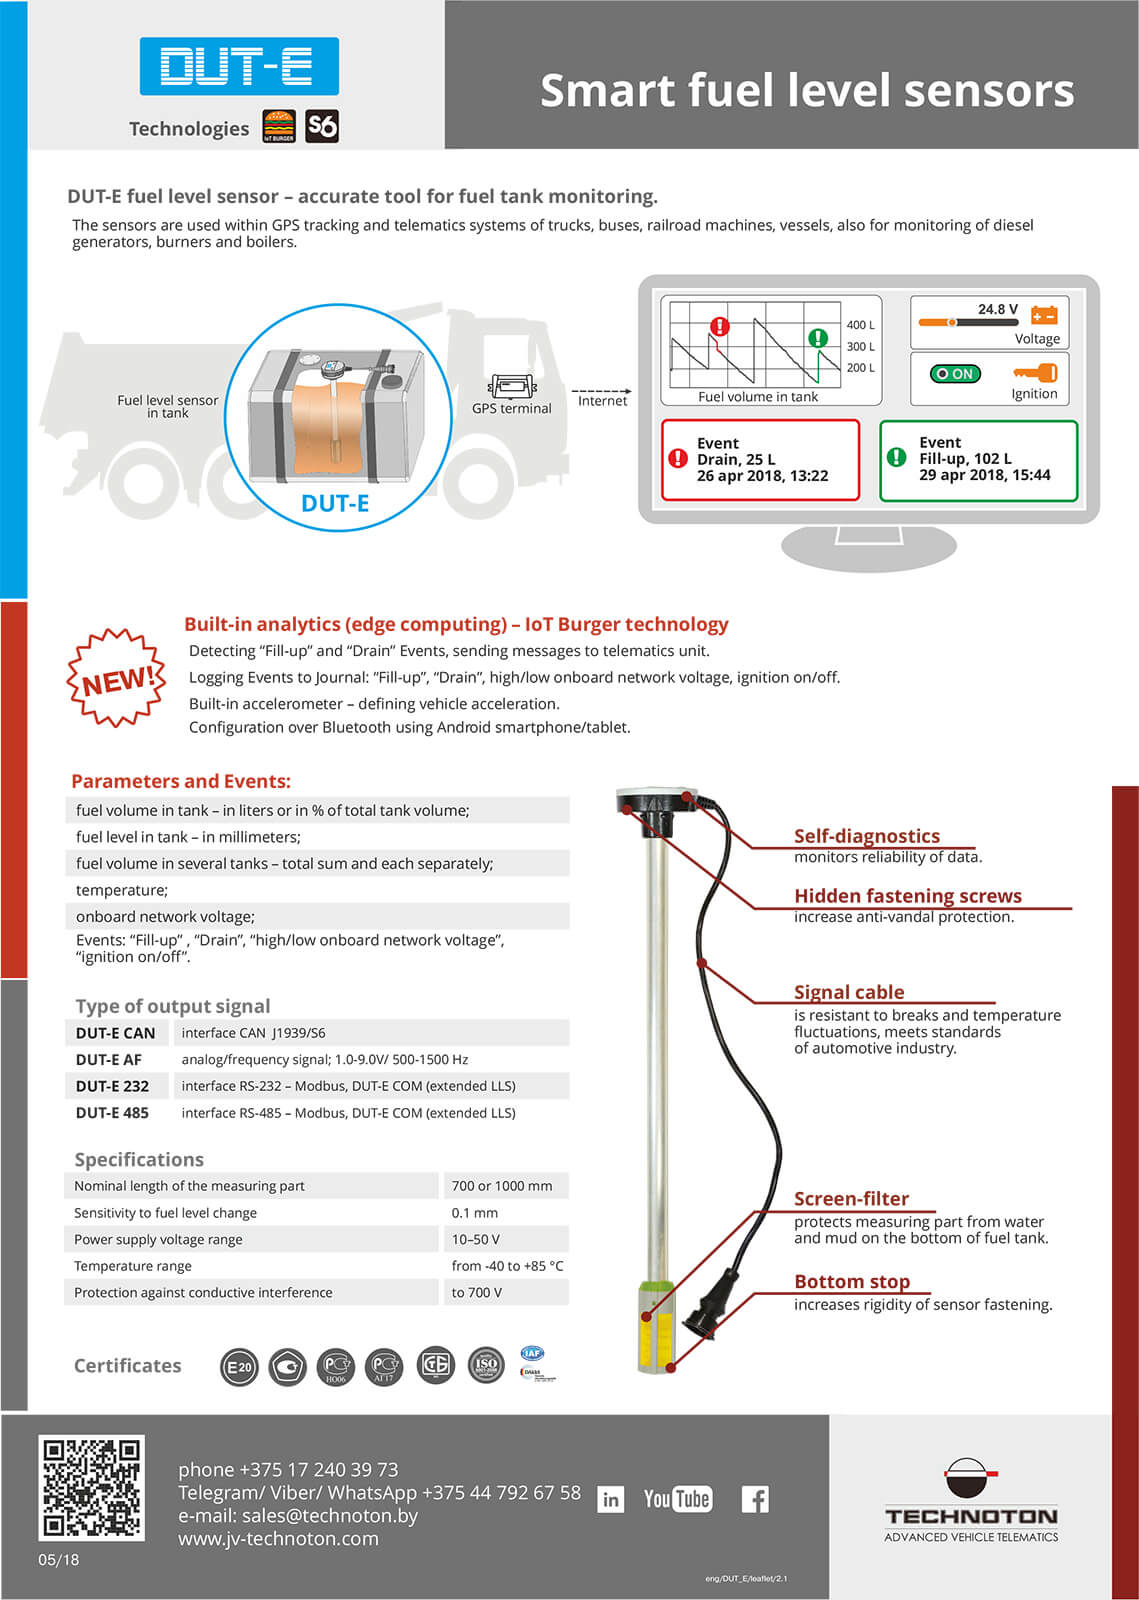 Leaflet fuel level sensor dut-e can